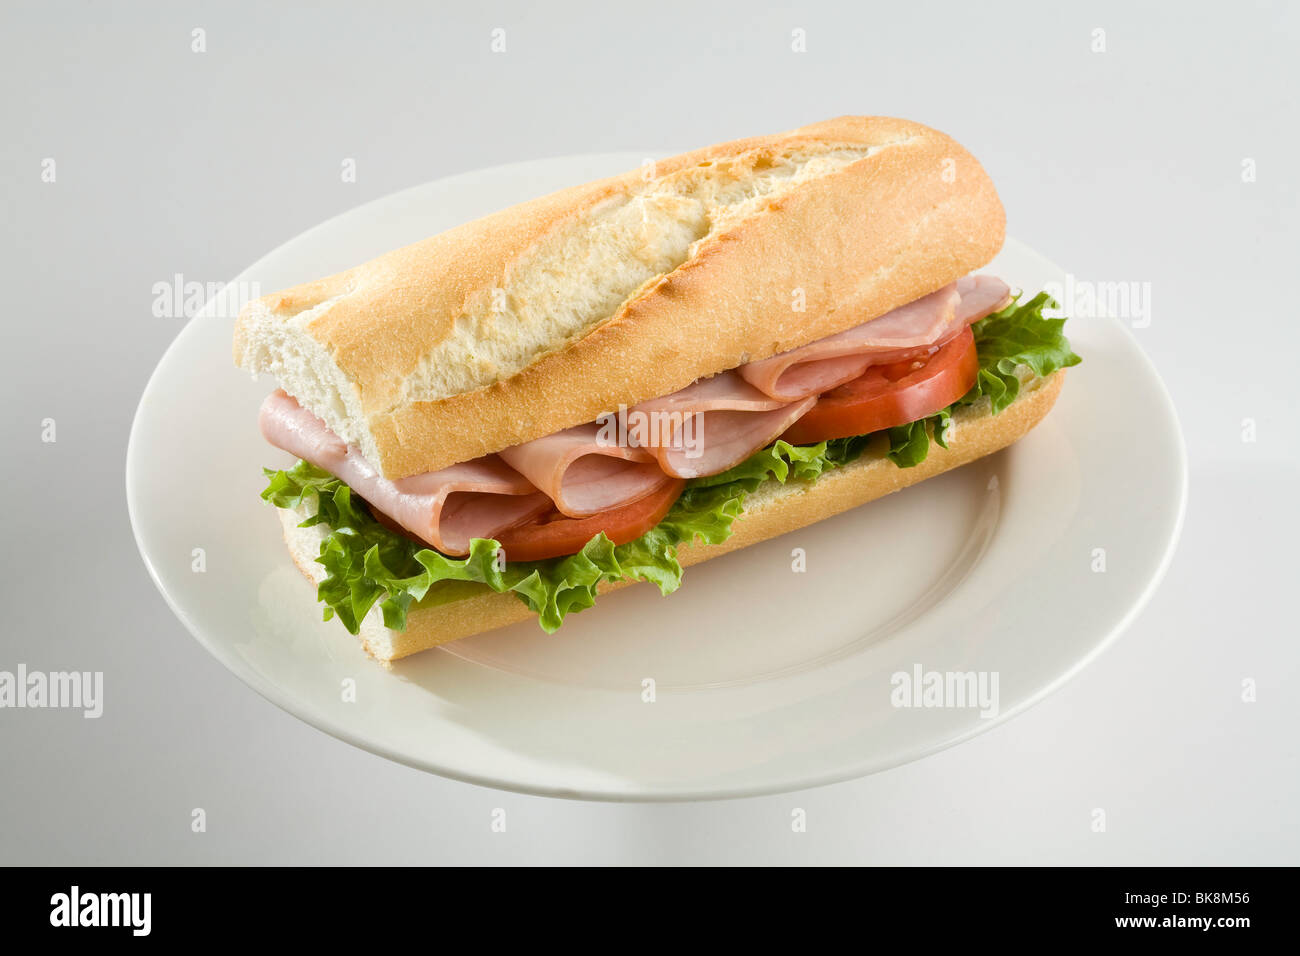 Ham and tomato sandwich on baguette - Stock Image